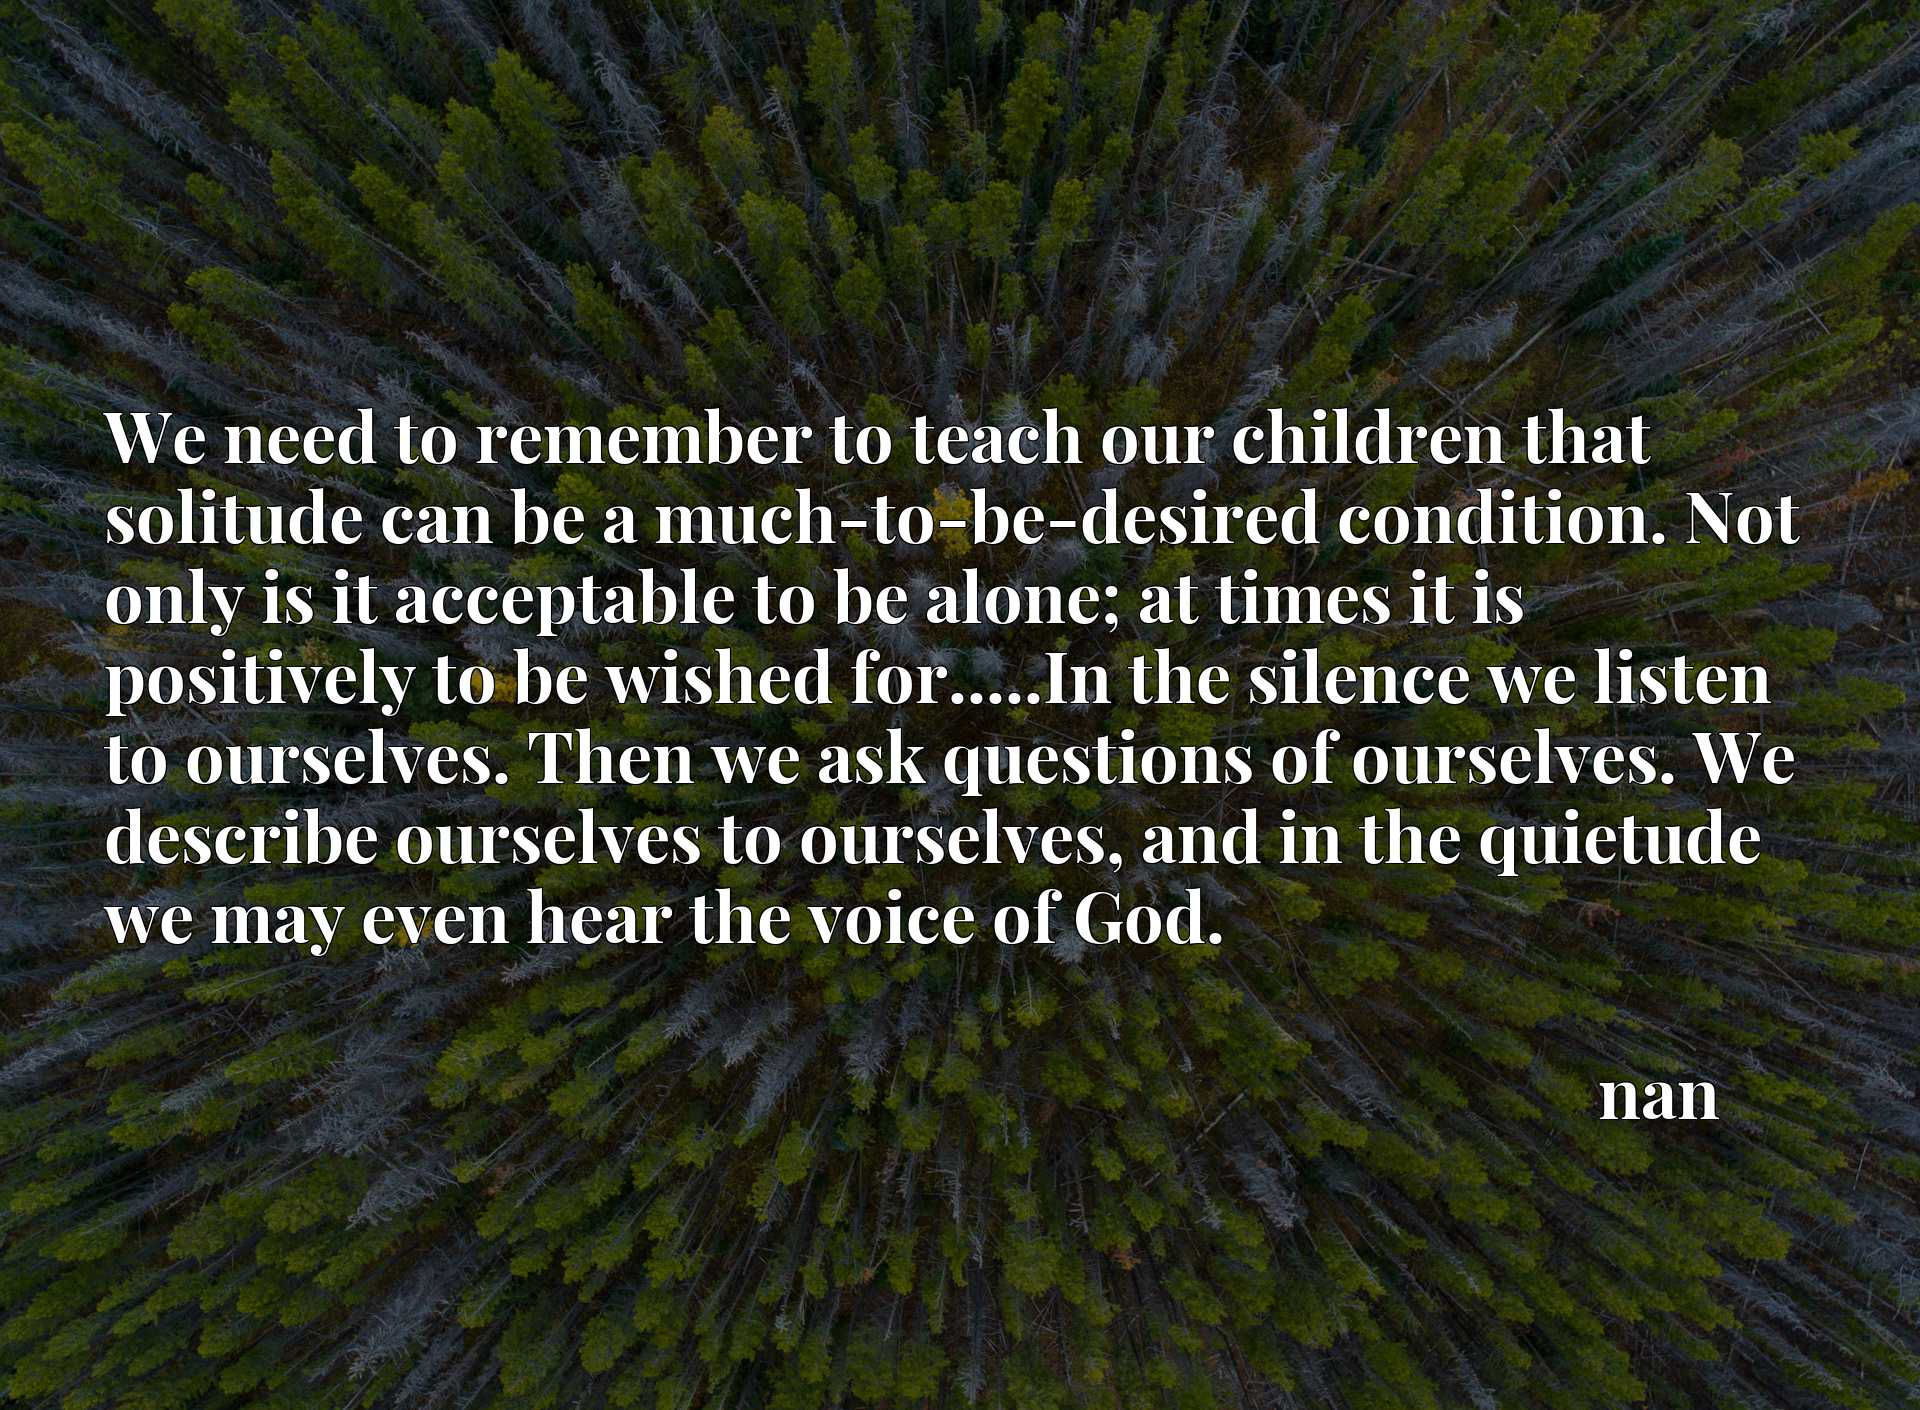 We need to remember to teach our children that solitude can be a much-to-be-desired condition. Not only is it acceptable to be alone; at times it is positively to be wished for.....In the silence we listen to ourselves. Then we ask questions of ourselves. We describe ourselves to ourselves, and in the quietude we may even hear the voice of God.